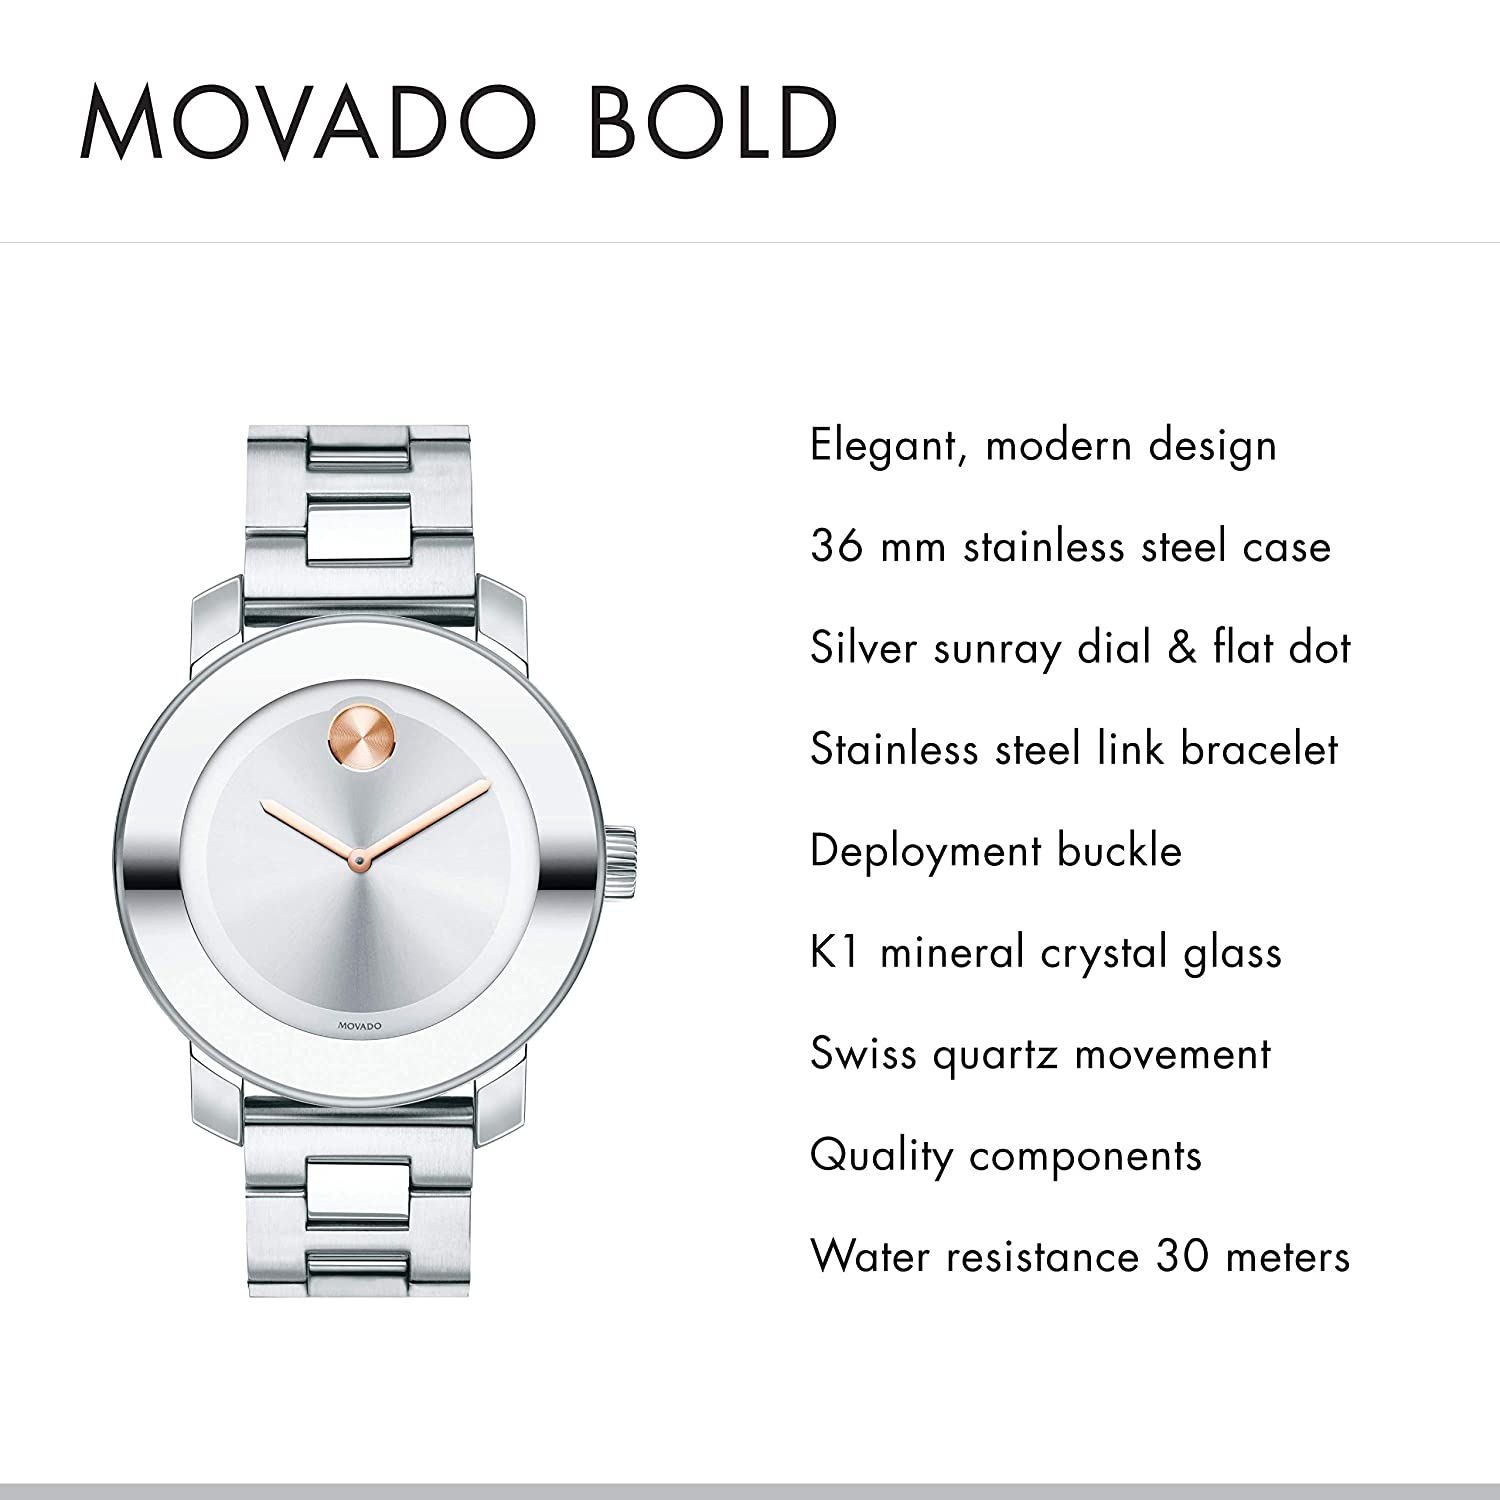 cefc006f1 Amazon.com: Movado Women's BOLD Iconic Metal Watch with a Flat Dot Sunray  Dial, Silver/Pink/Gold (Model 3600084): Watches